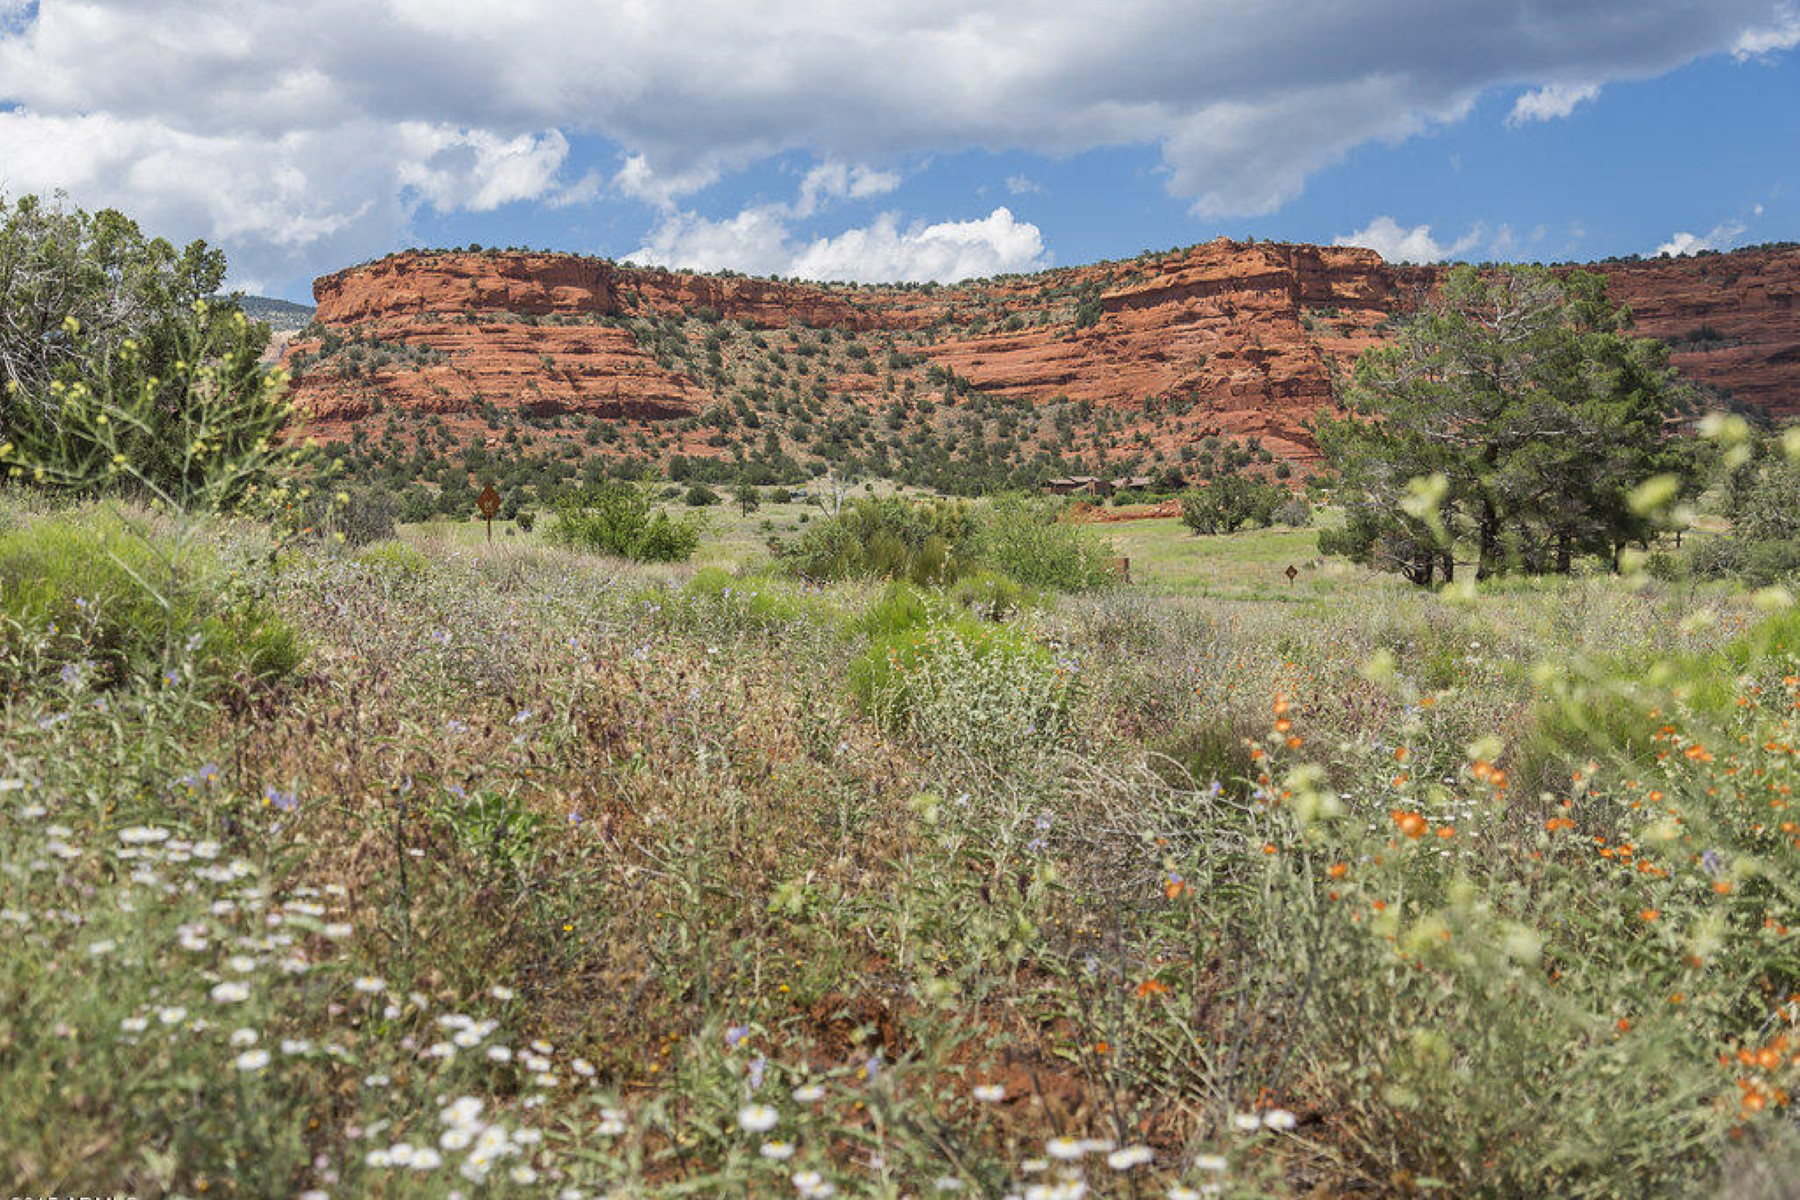 Land for Sale at Aerie Lot 29 - Stunnig 2.59 acre parcel with expansive views of Sedona red rock. 360 Aerie RD 29 Sedona, Arizona 86336 United States